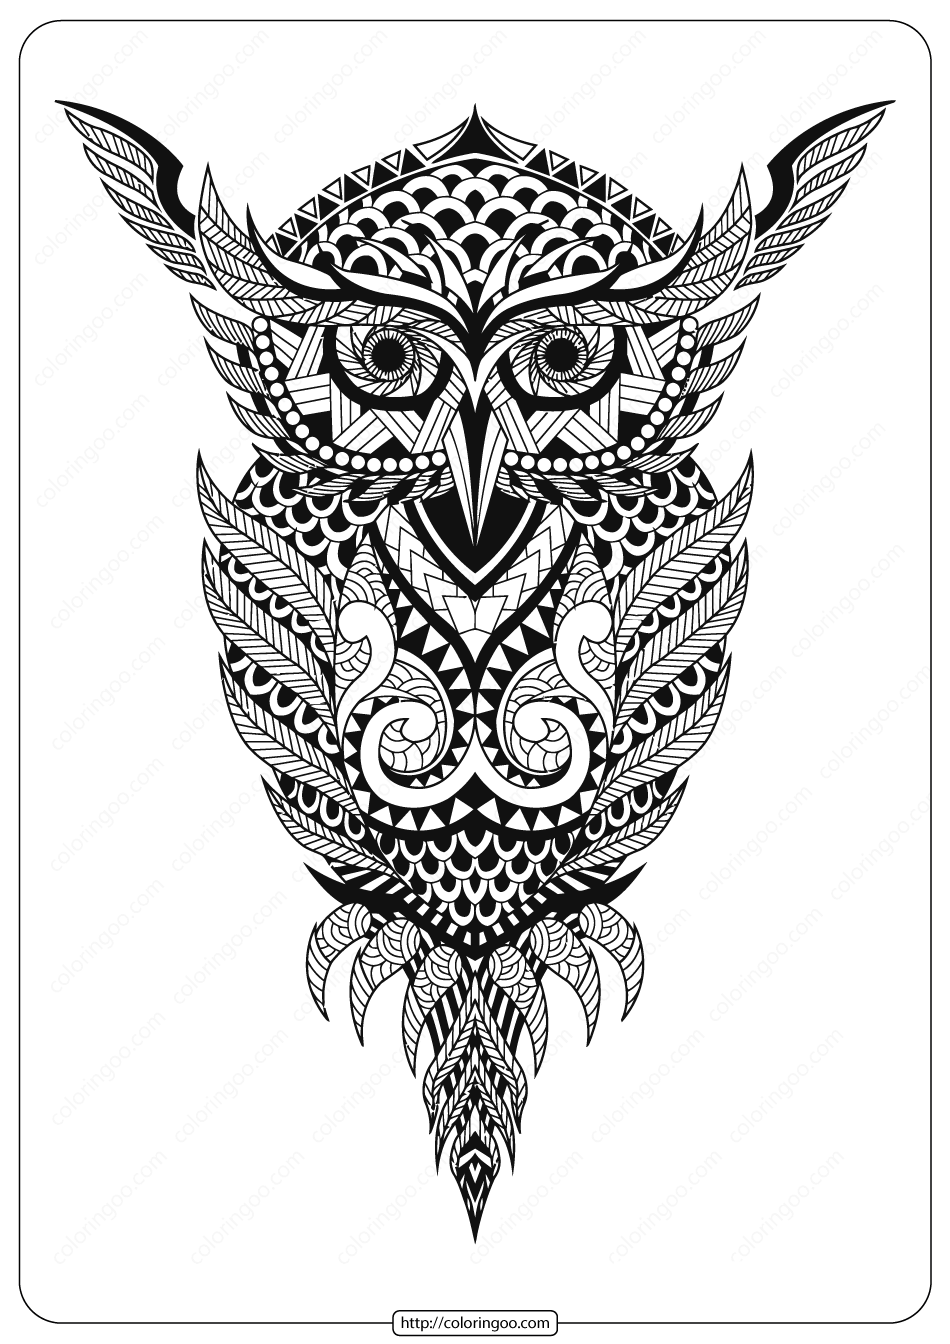 Free Printable Owl Animal Coloring Page - 005